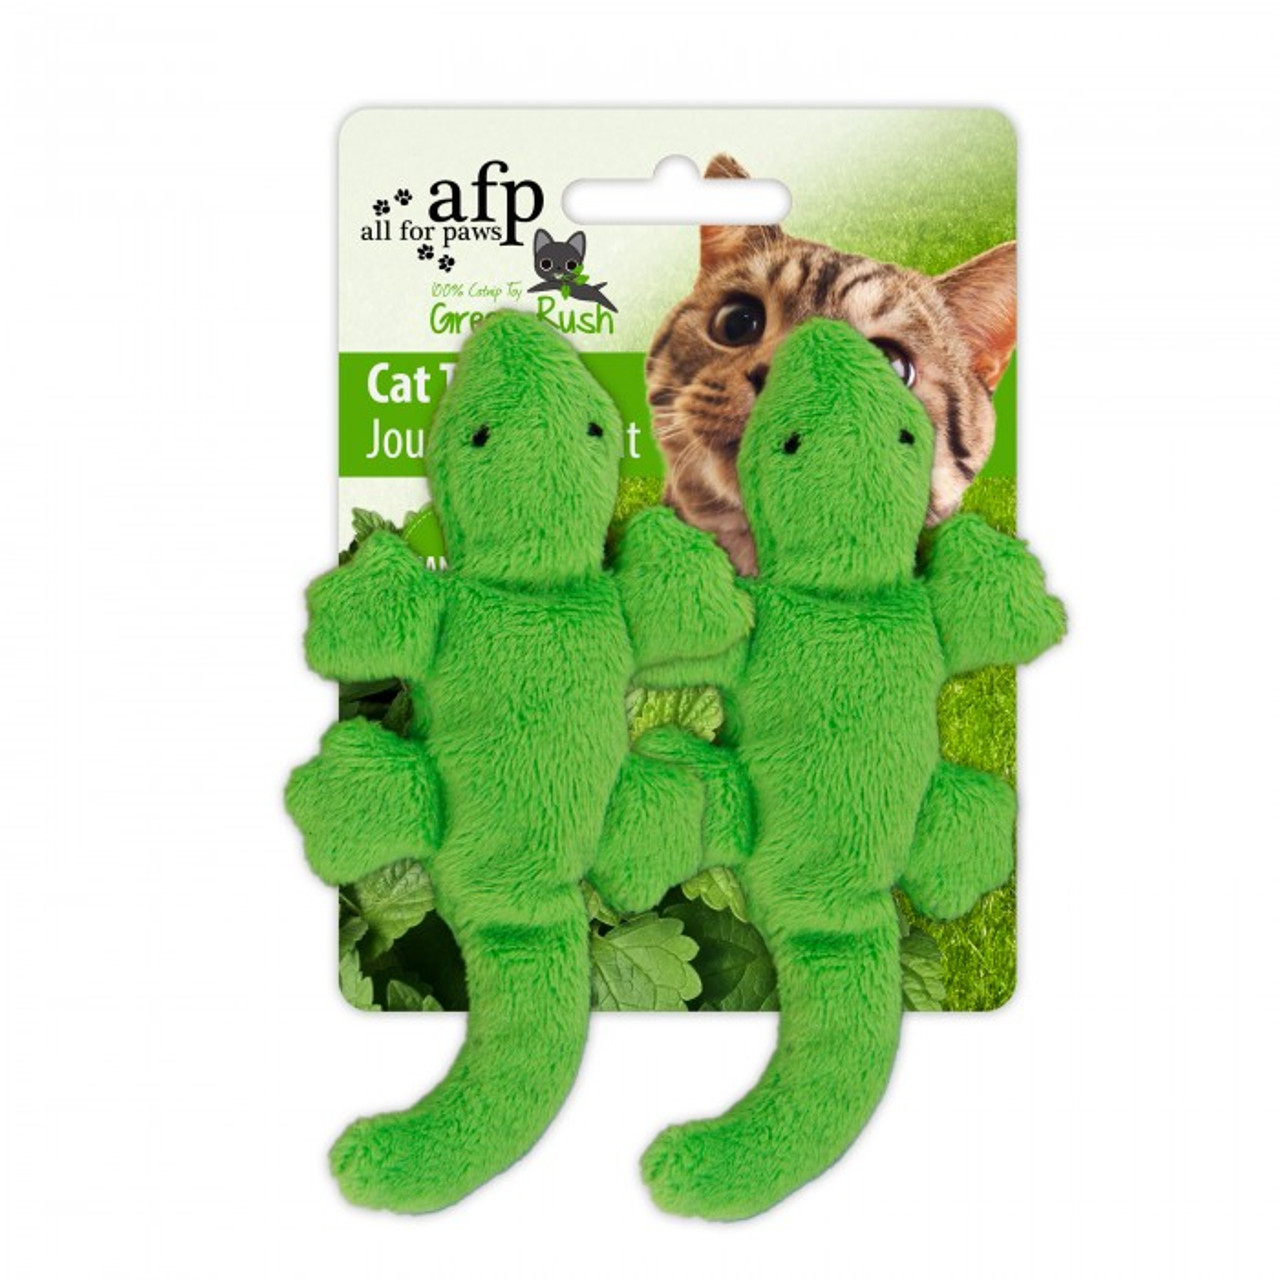 All for Paws Gecko - Green